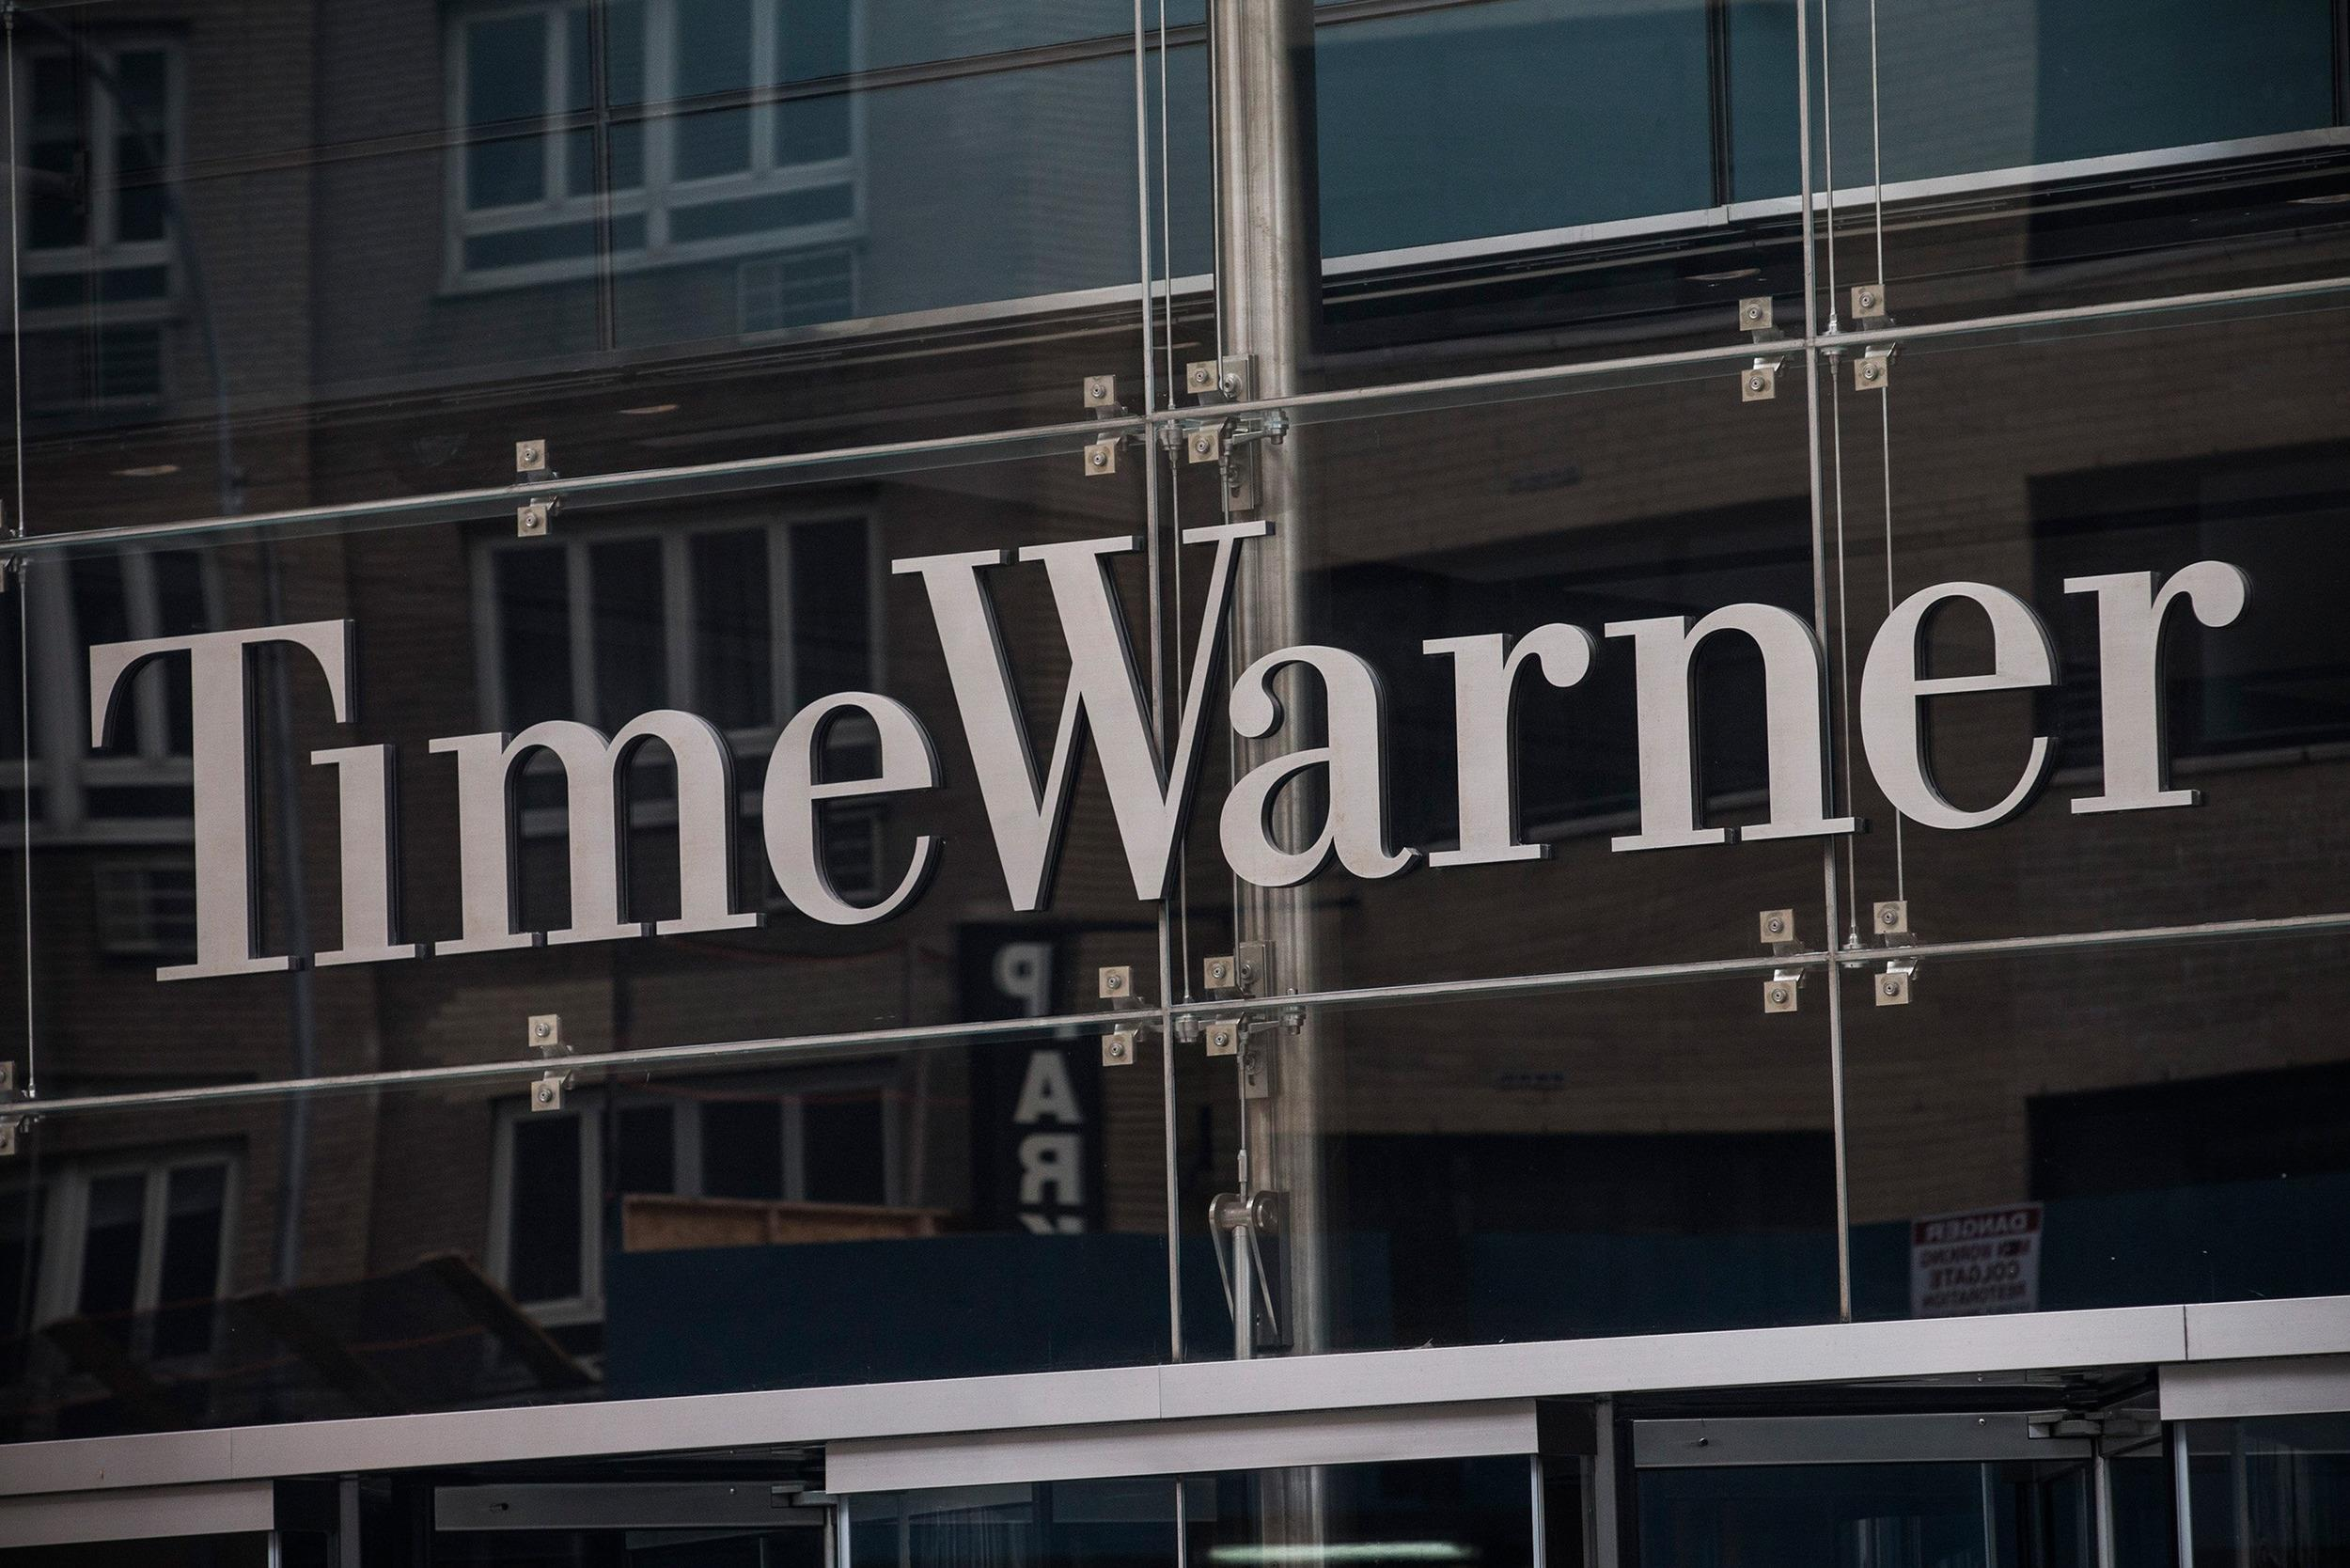 Time Warner has rejected an $80 billion formal offer from News Corp.'s 21st Century Fox, people briefed on the matter said.